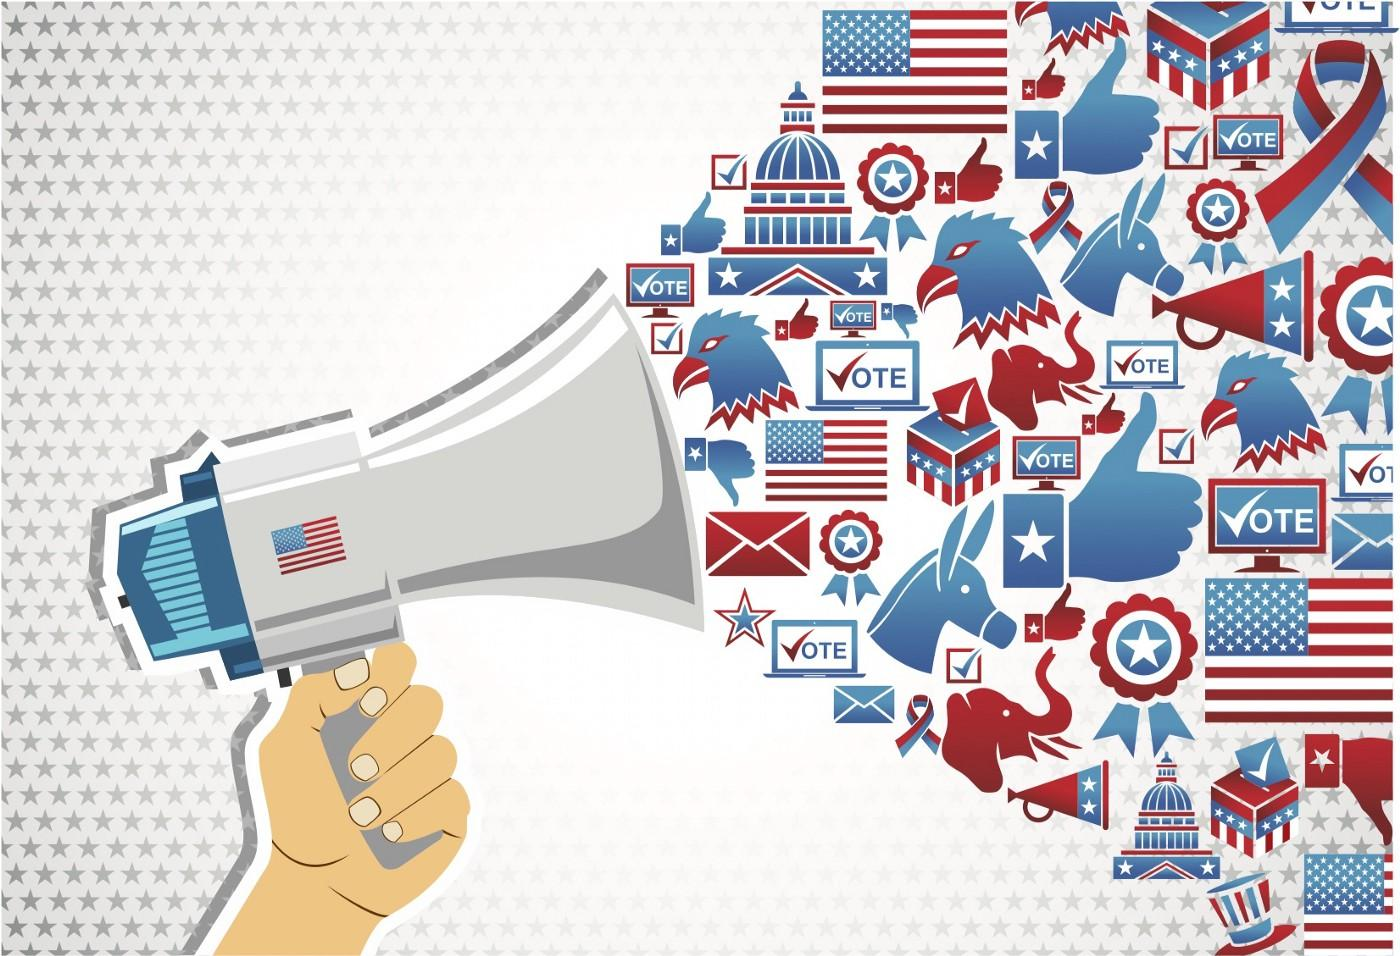 Digital Marketing: The New Age Mantra For Political Campaign   by Shrikant  S   Medium